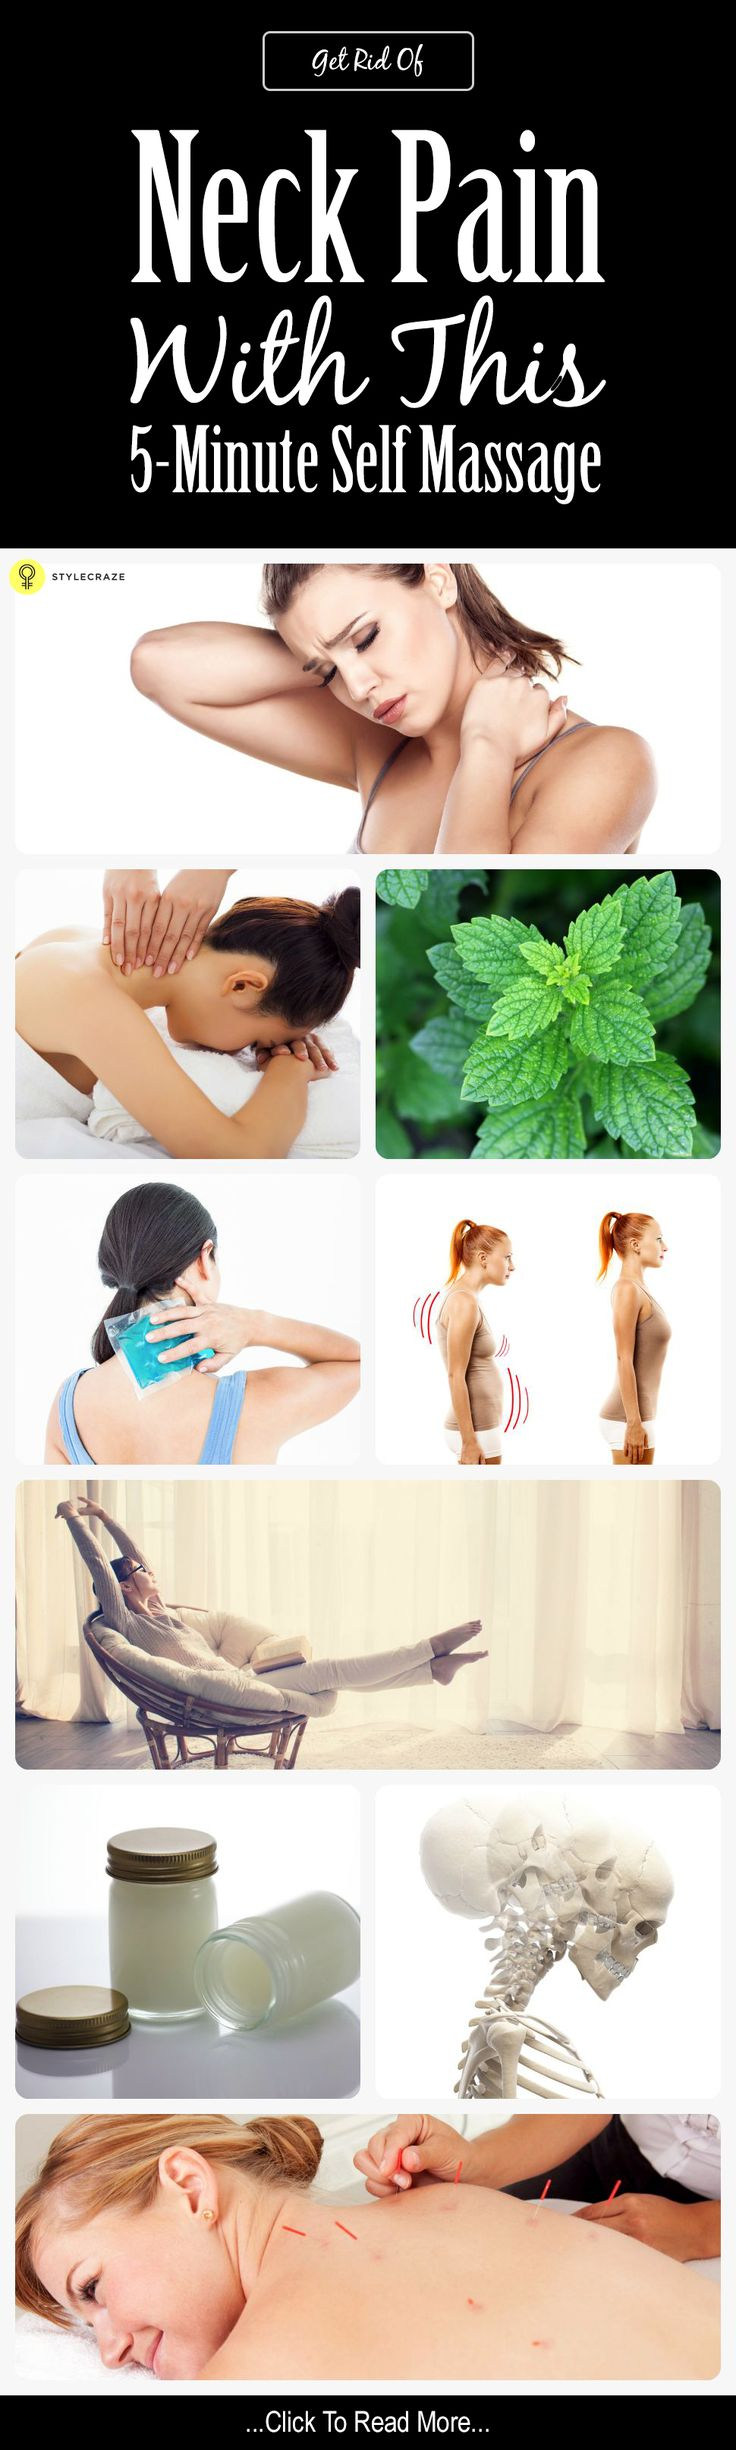 How To Get Rid Of Neck Pain In 5 Minutes With This Self Massage– All You Need To Know And Do!